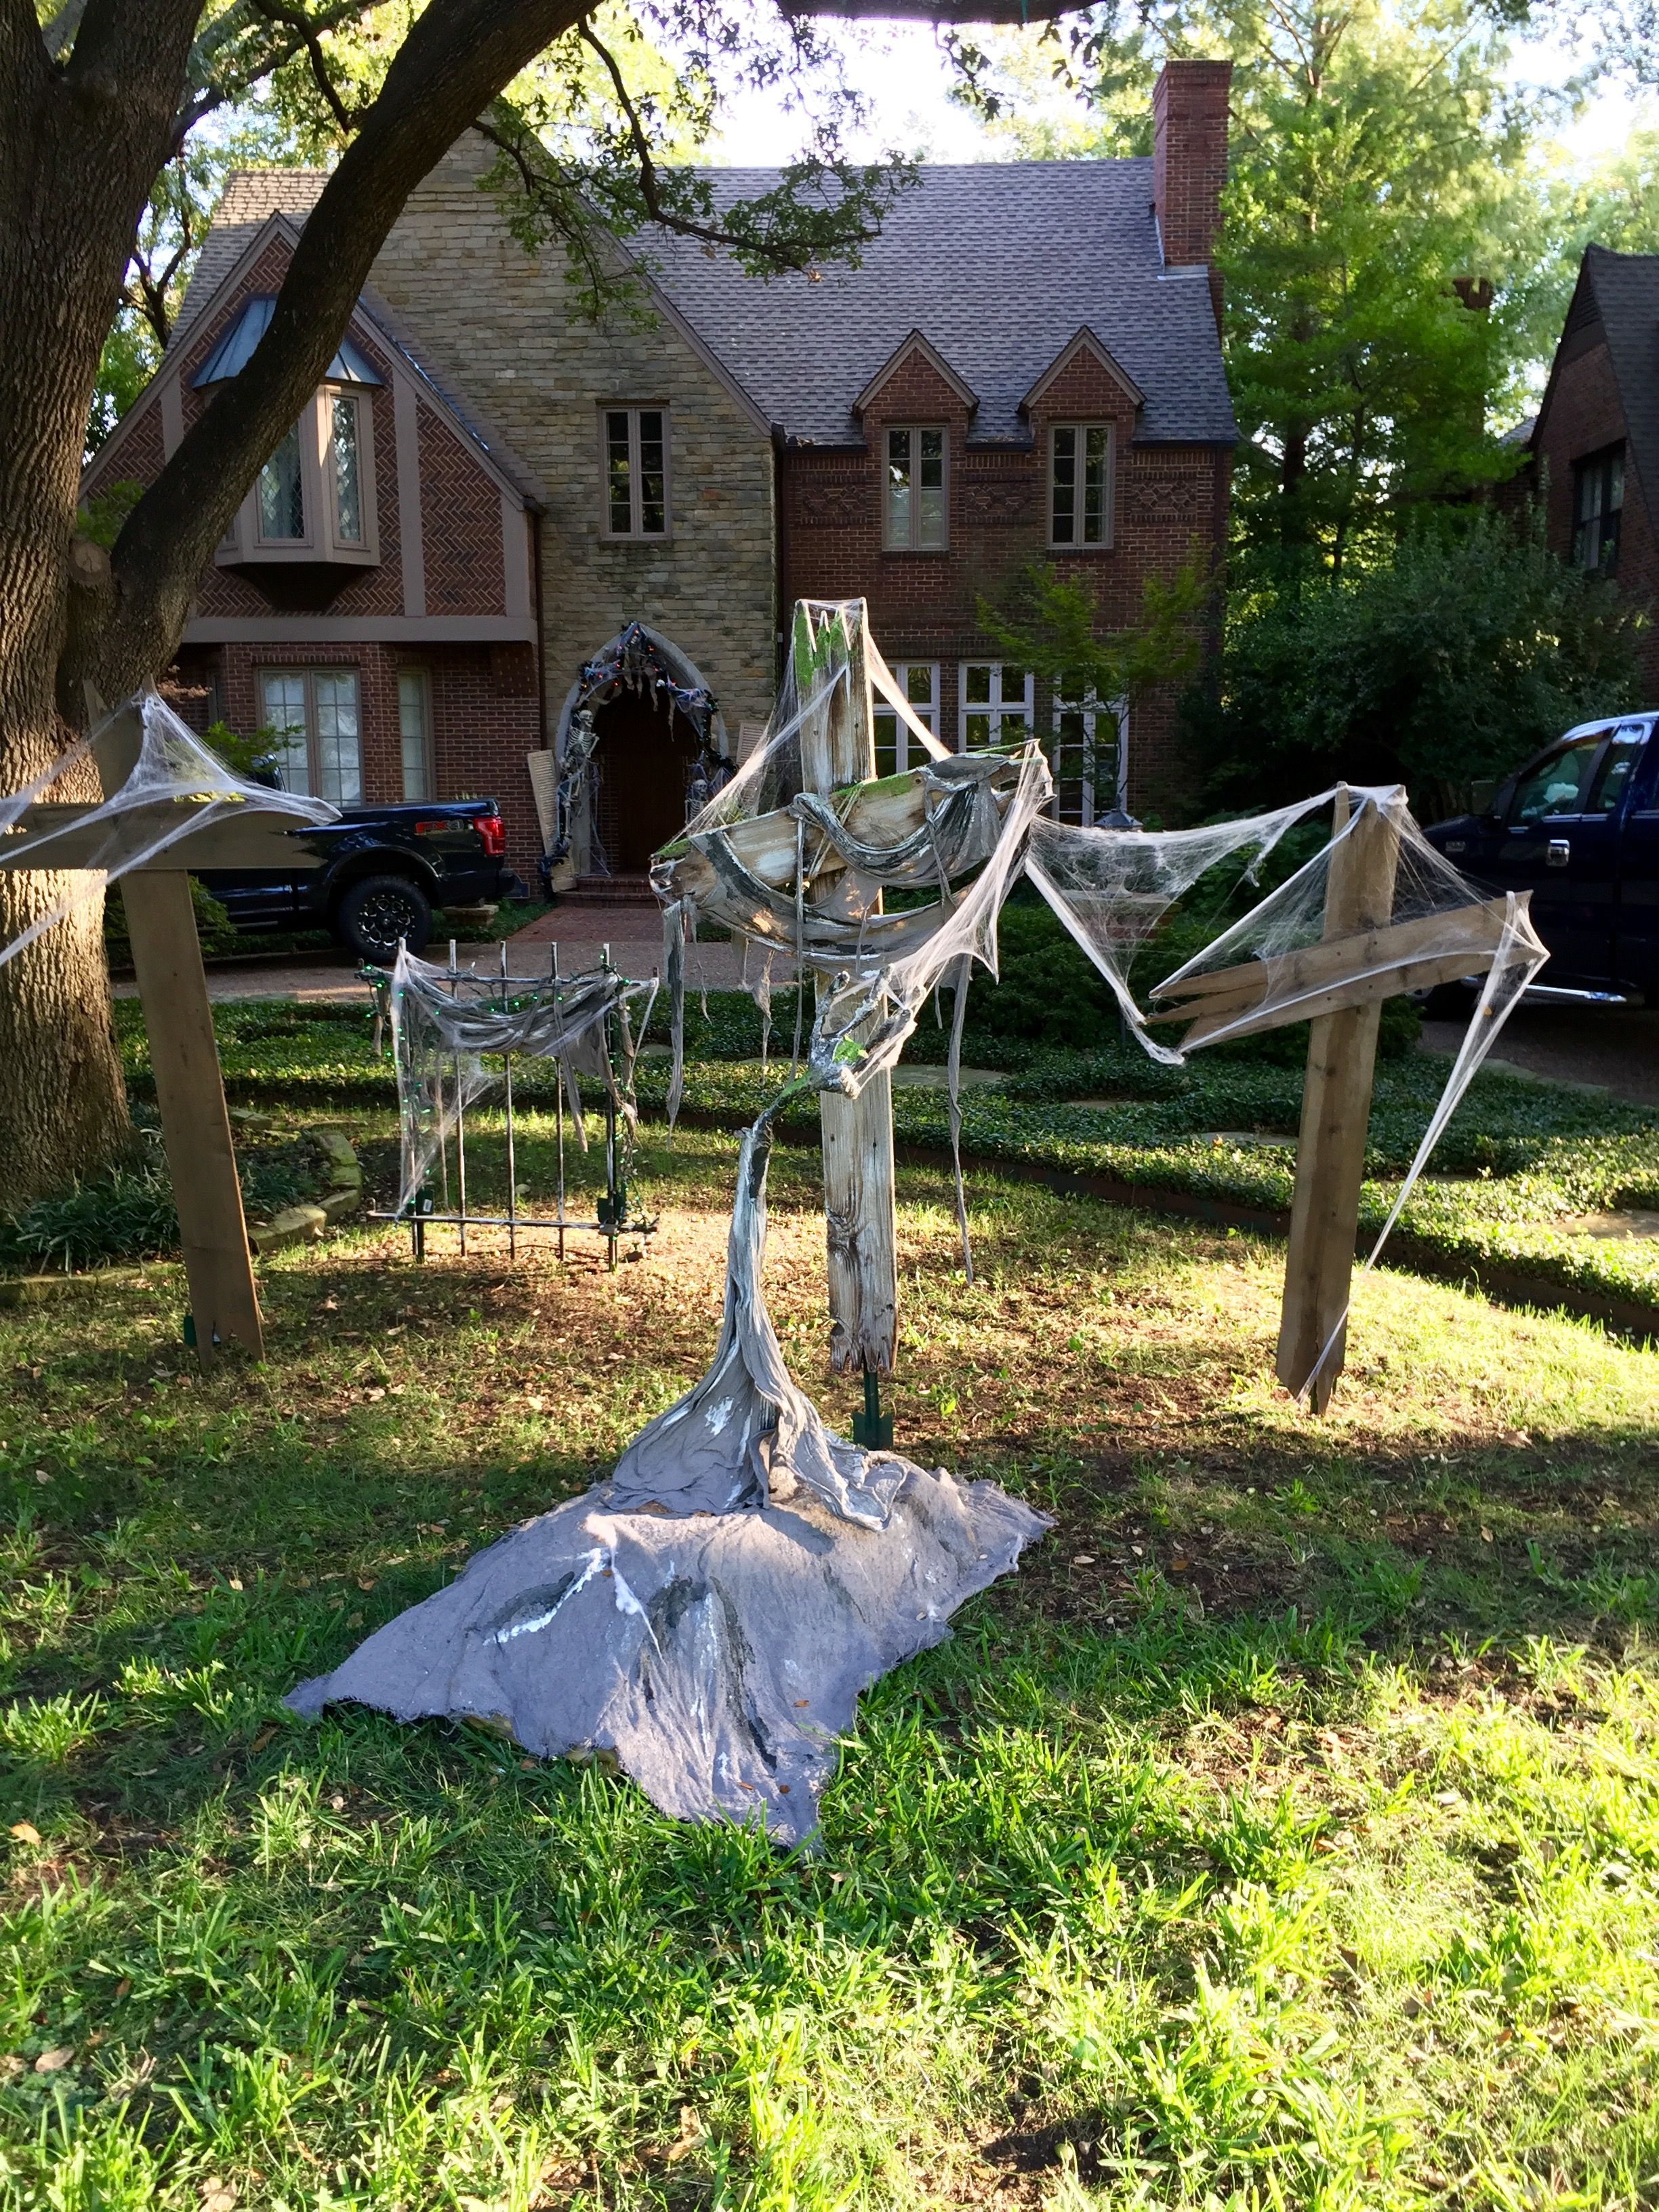 Pin by Hob Nob Decor on Halloween Decor by Roger Spruill Pinterest - Spooky Halloween Decorations